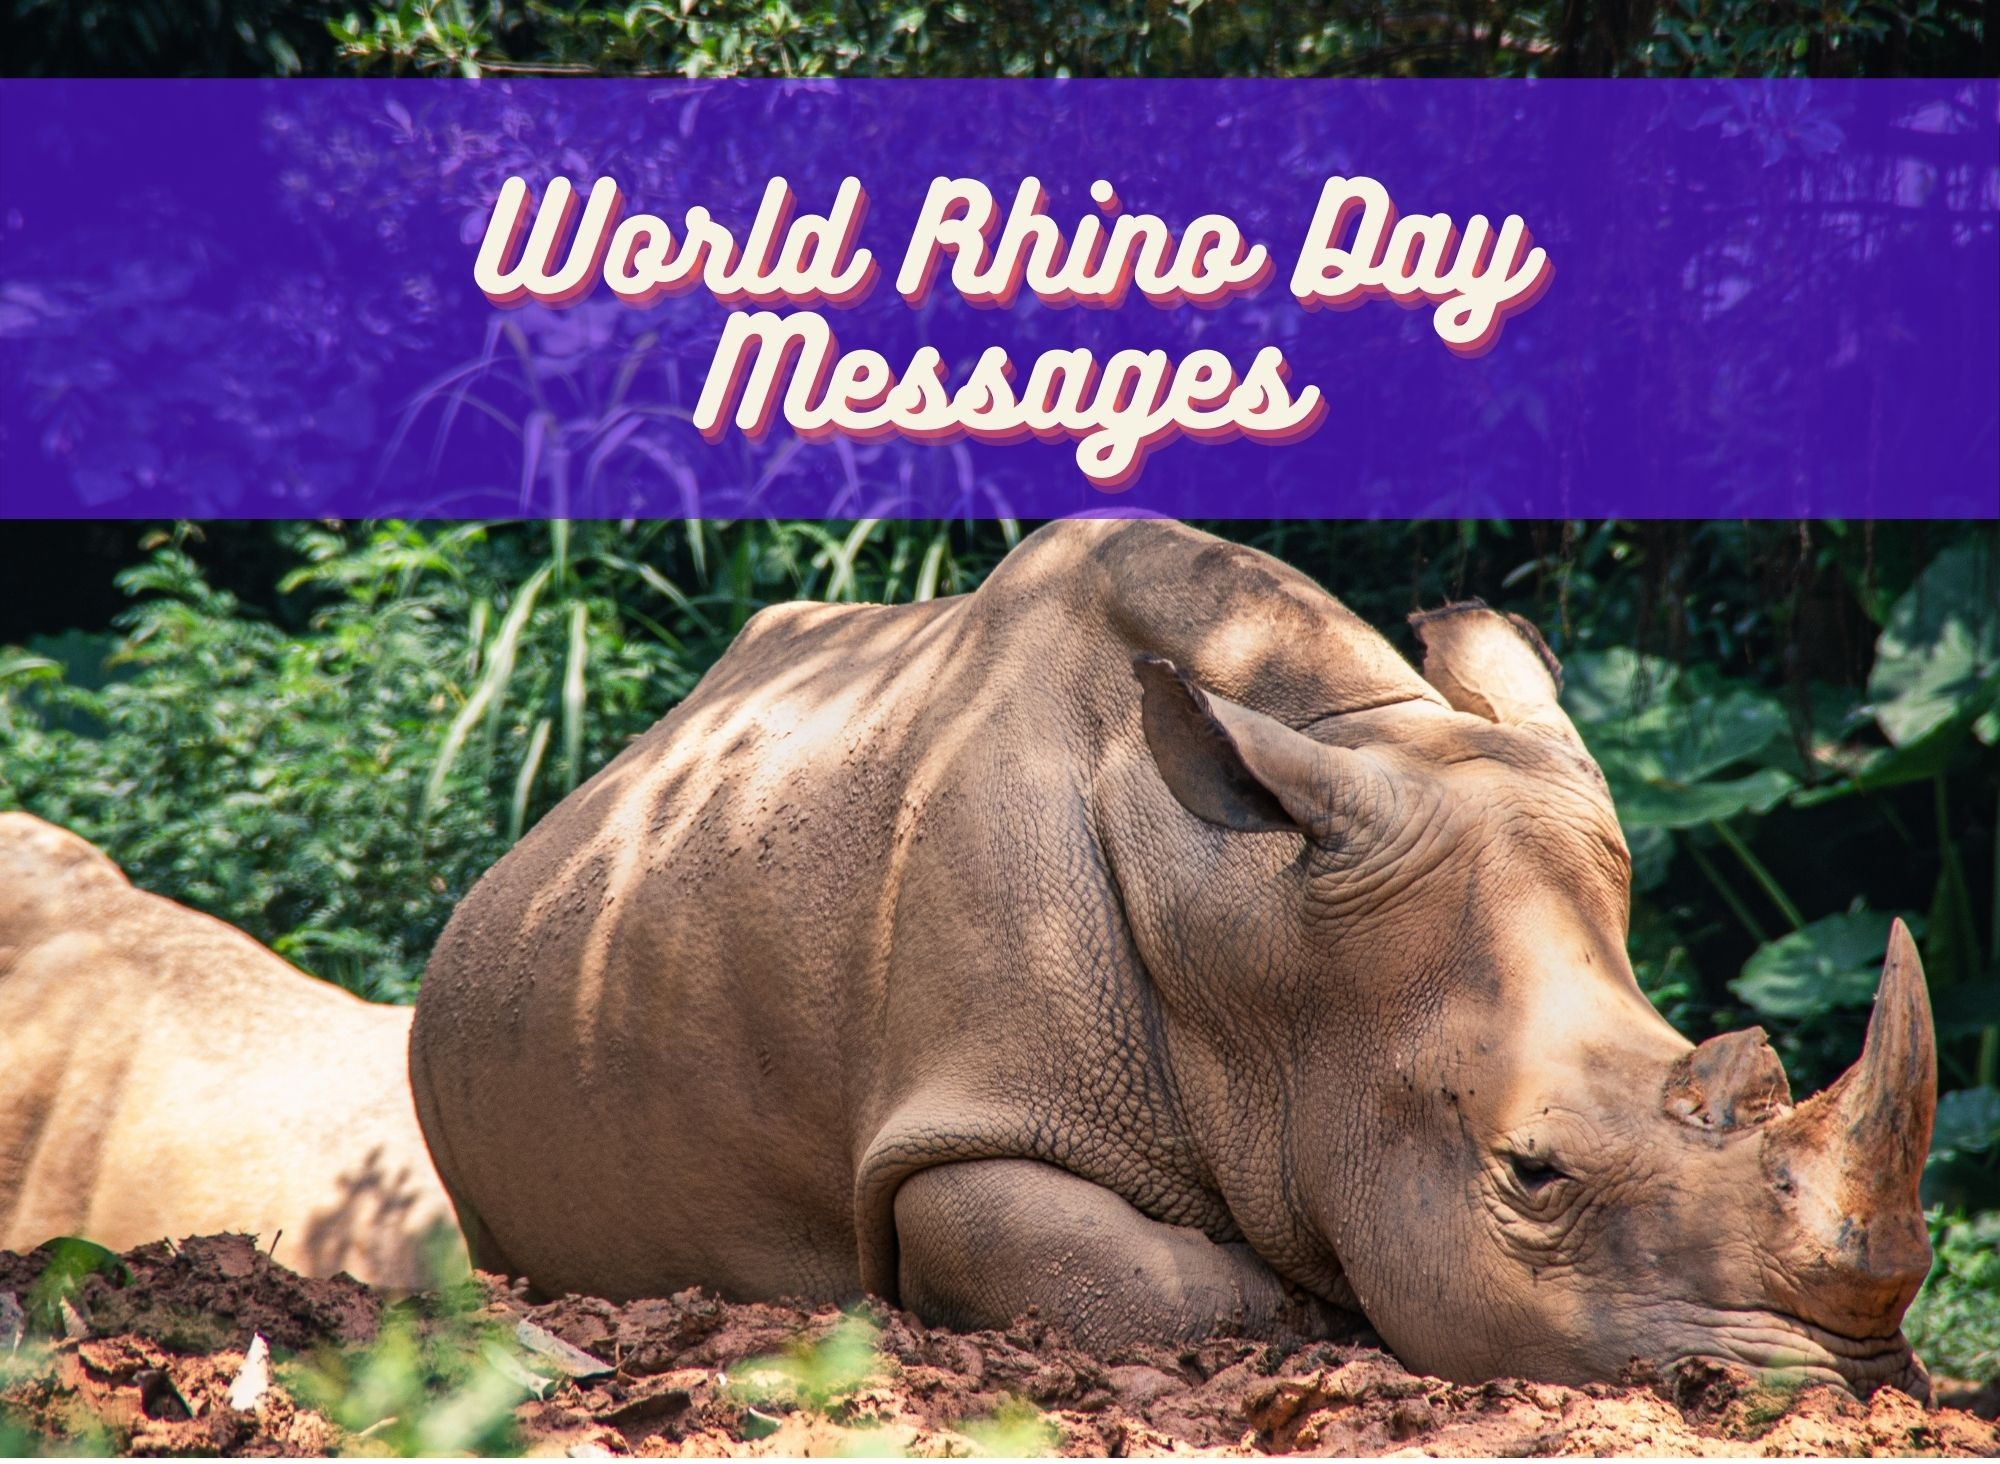 World Rhino Day Messages